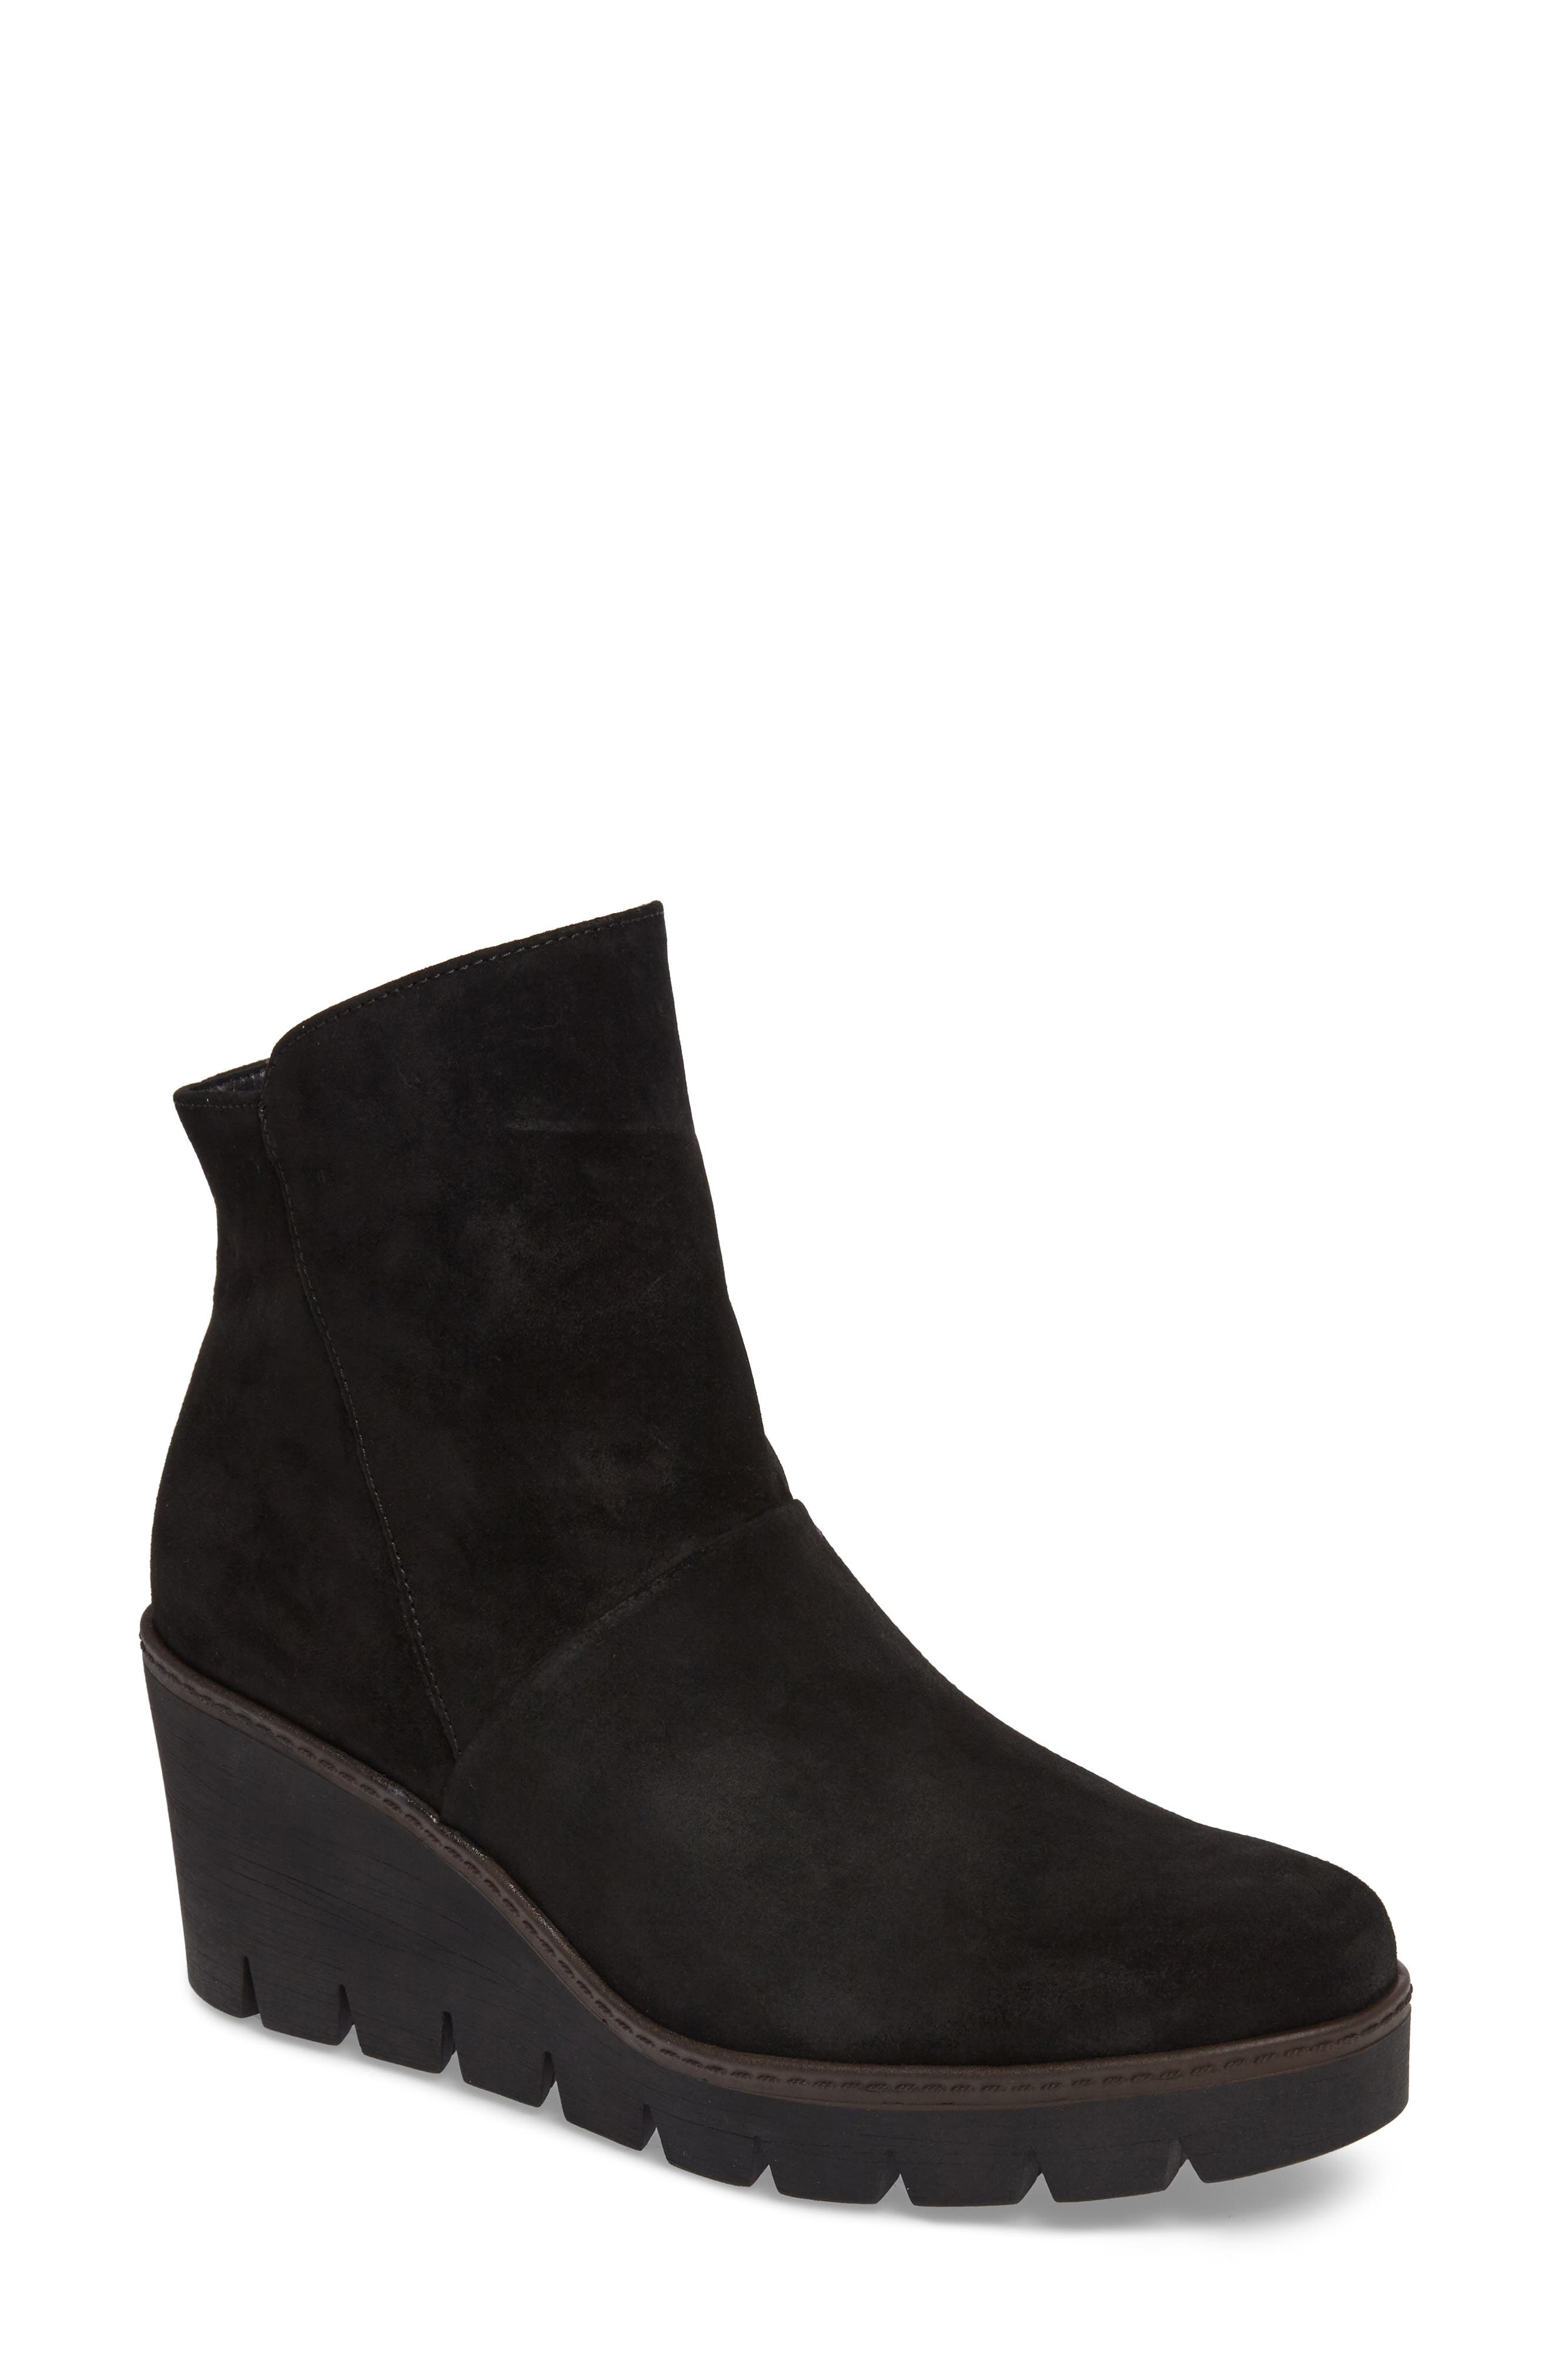 Wedge Bootie,                             Main thumbnail 1, color,                             BLACK SUEDE